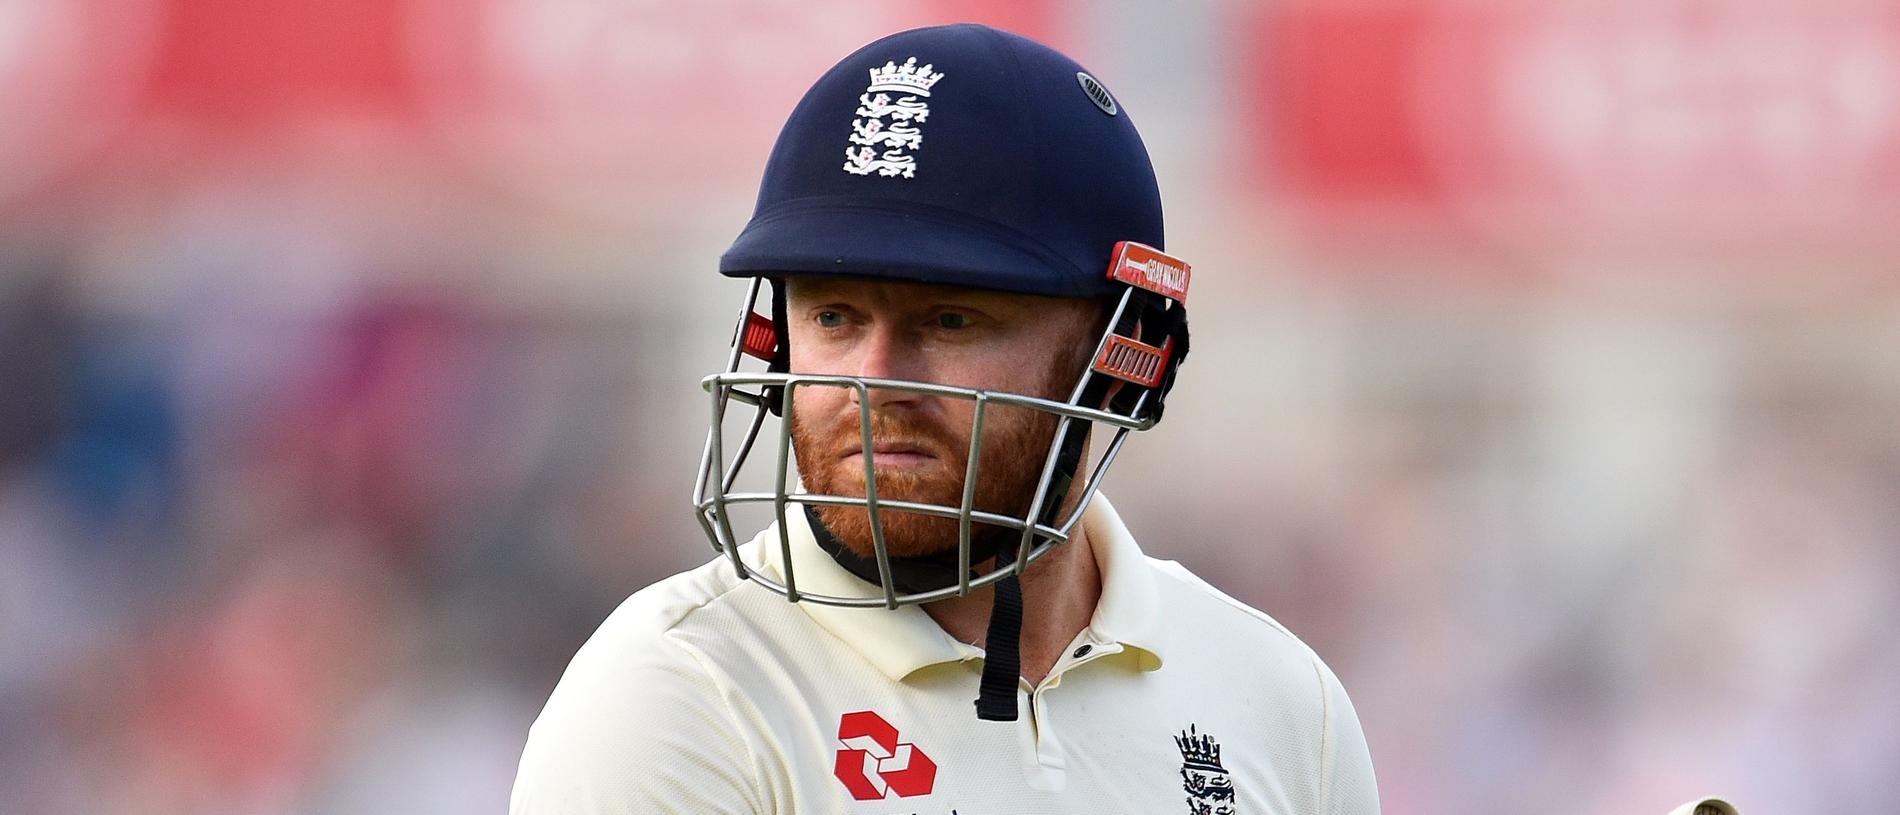 (FILES) In this file photo taken on September 12, 2019 England's Jonny Bairstow walks back to the pavilion after losing his wicket for 22 runs during play on the first day of the fifth Ashes cricket Test match between England and Australia at The Oval in London. - England have dropped Jonny Bairstow from their Test squad for the tour of New Zealand, with paceman James Anderson unavailable for the two-match series due to a calf injury. (Photo by Glyn KIRK / AFP) / RESTRICTED TO EDITORIAL USE. NO ASSOCIATION WITH DIRECT COMPETITOR OF SPONSOR, PARTNER, OR SUPPLIER OF THE ECB